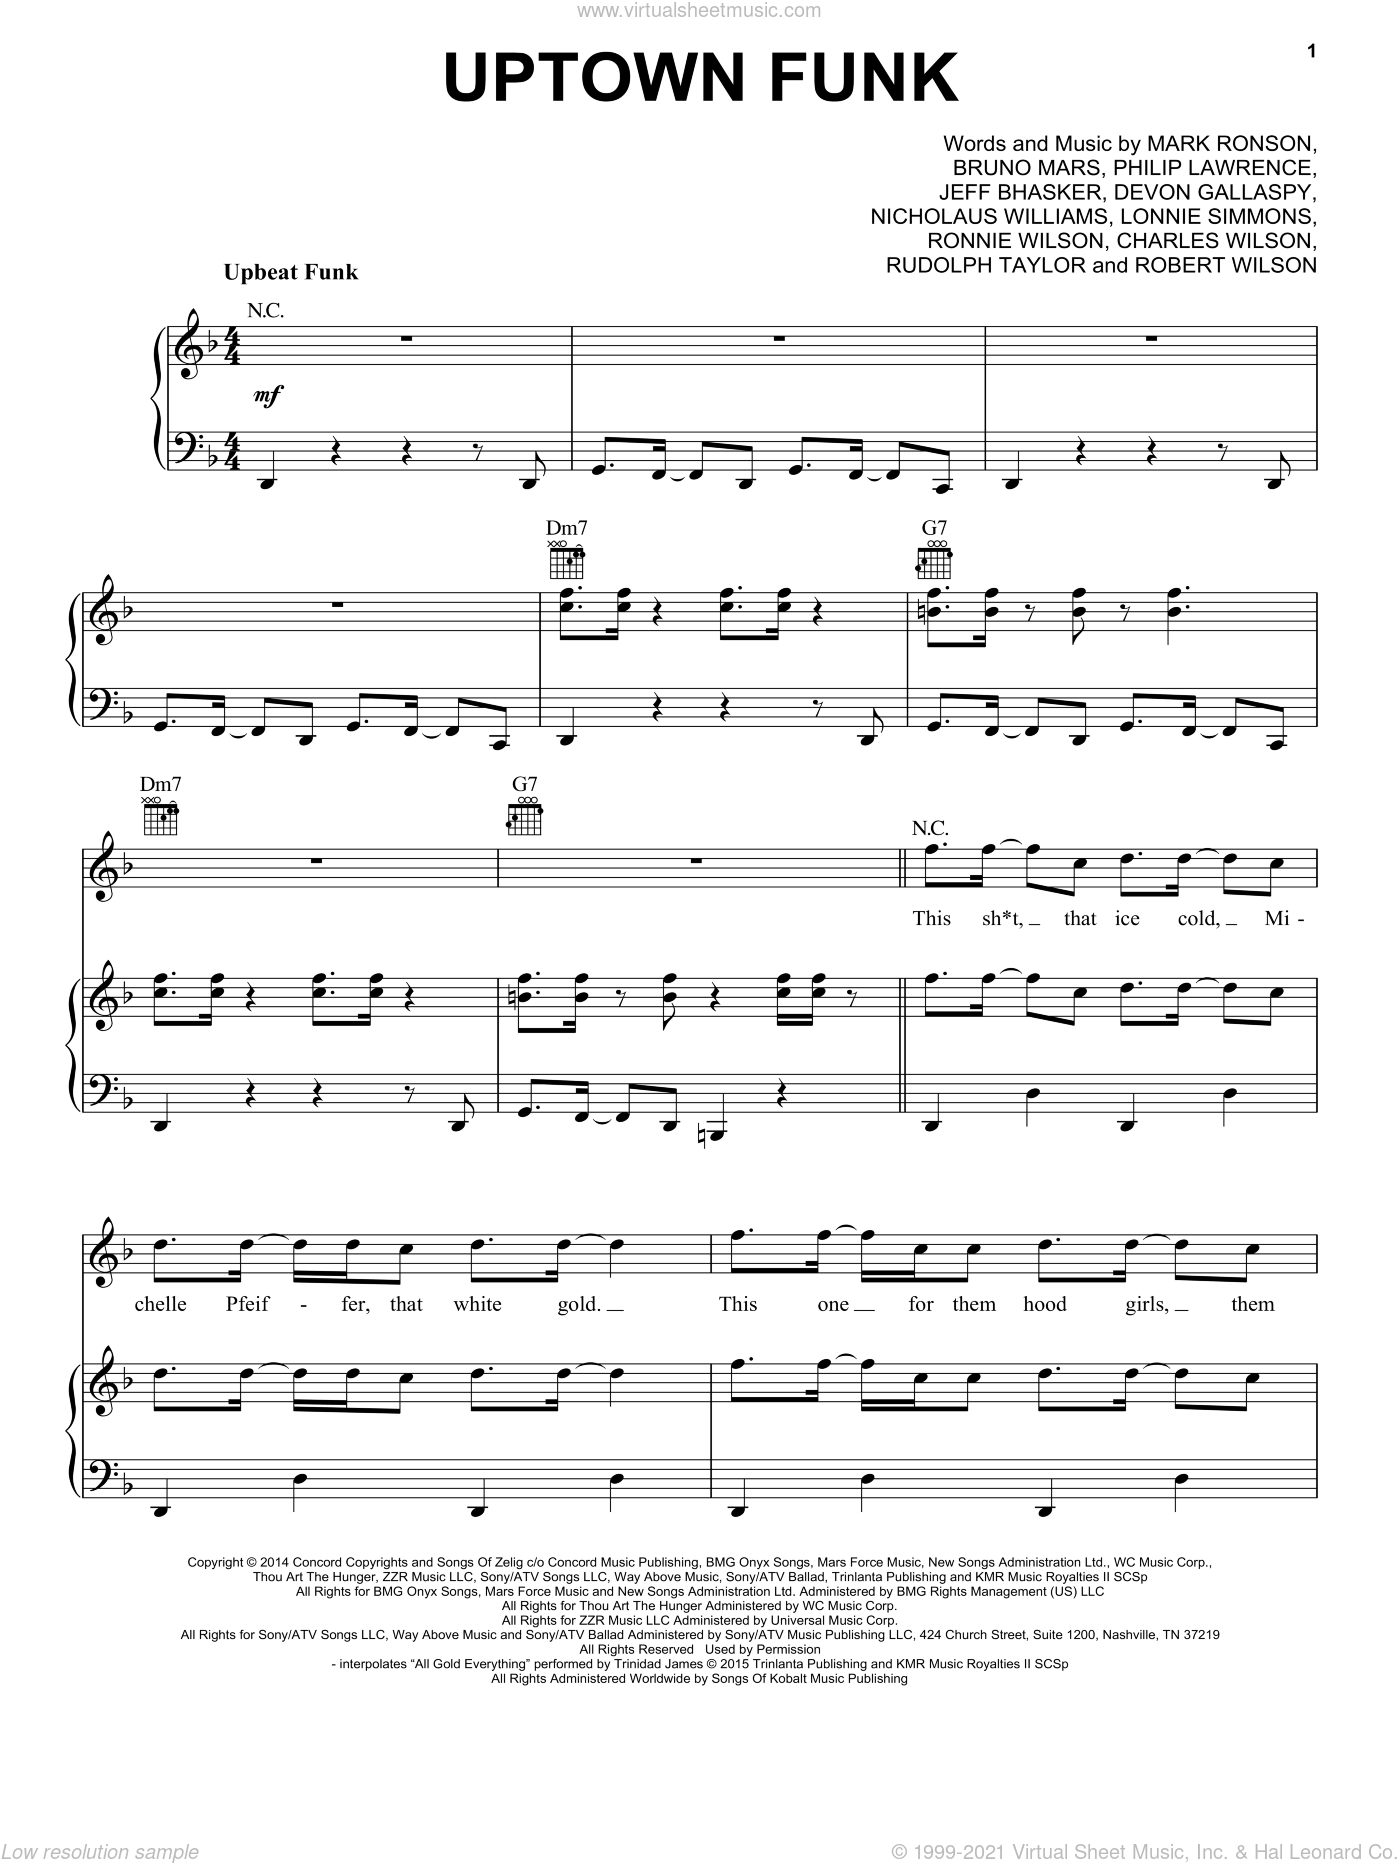 Uptown Funk (feat. Bruno Mars) sheet music for voice, piano or guitar by Mark Ronson ft. Bruno Mars, Bruno Mars, Devon Gallaspy, Jeff Bhasker, Mark Ronson, Nicholaus Williams and Philip Lawrence, intermediate skill level